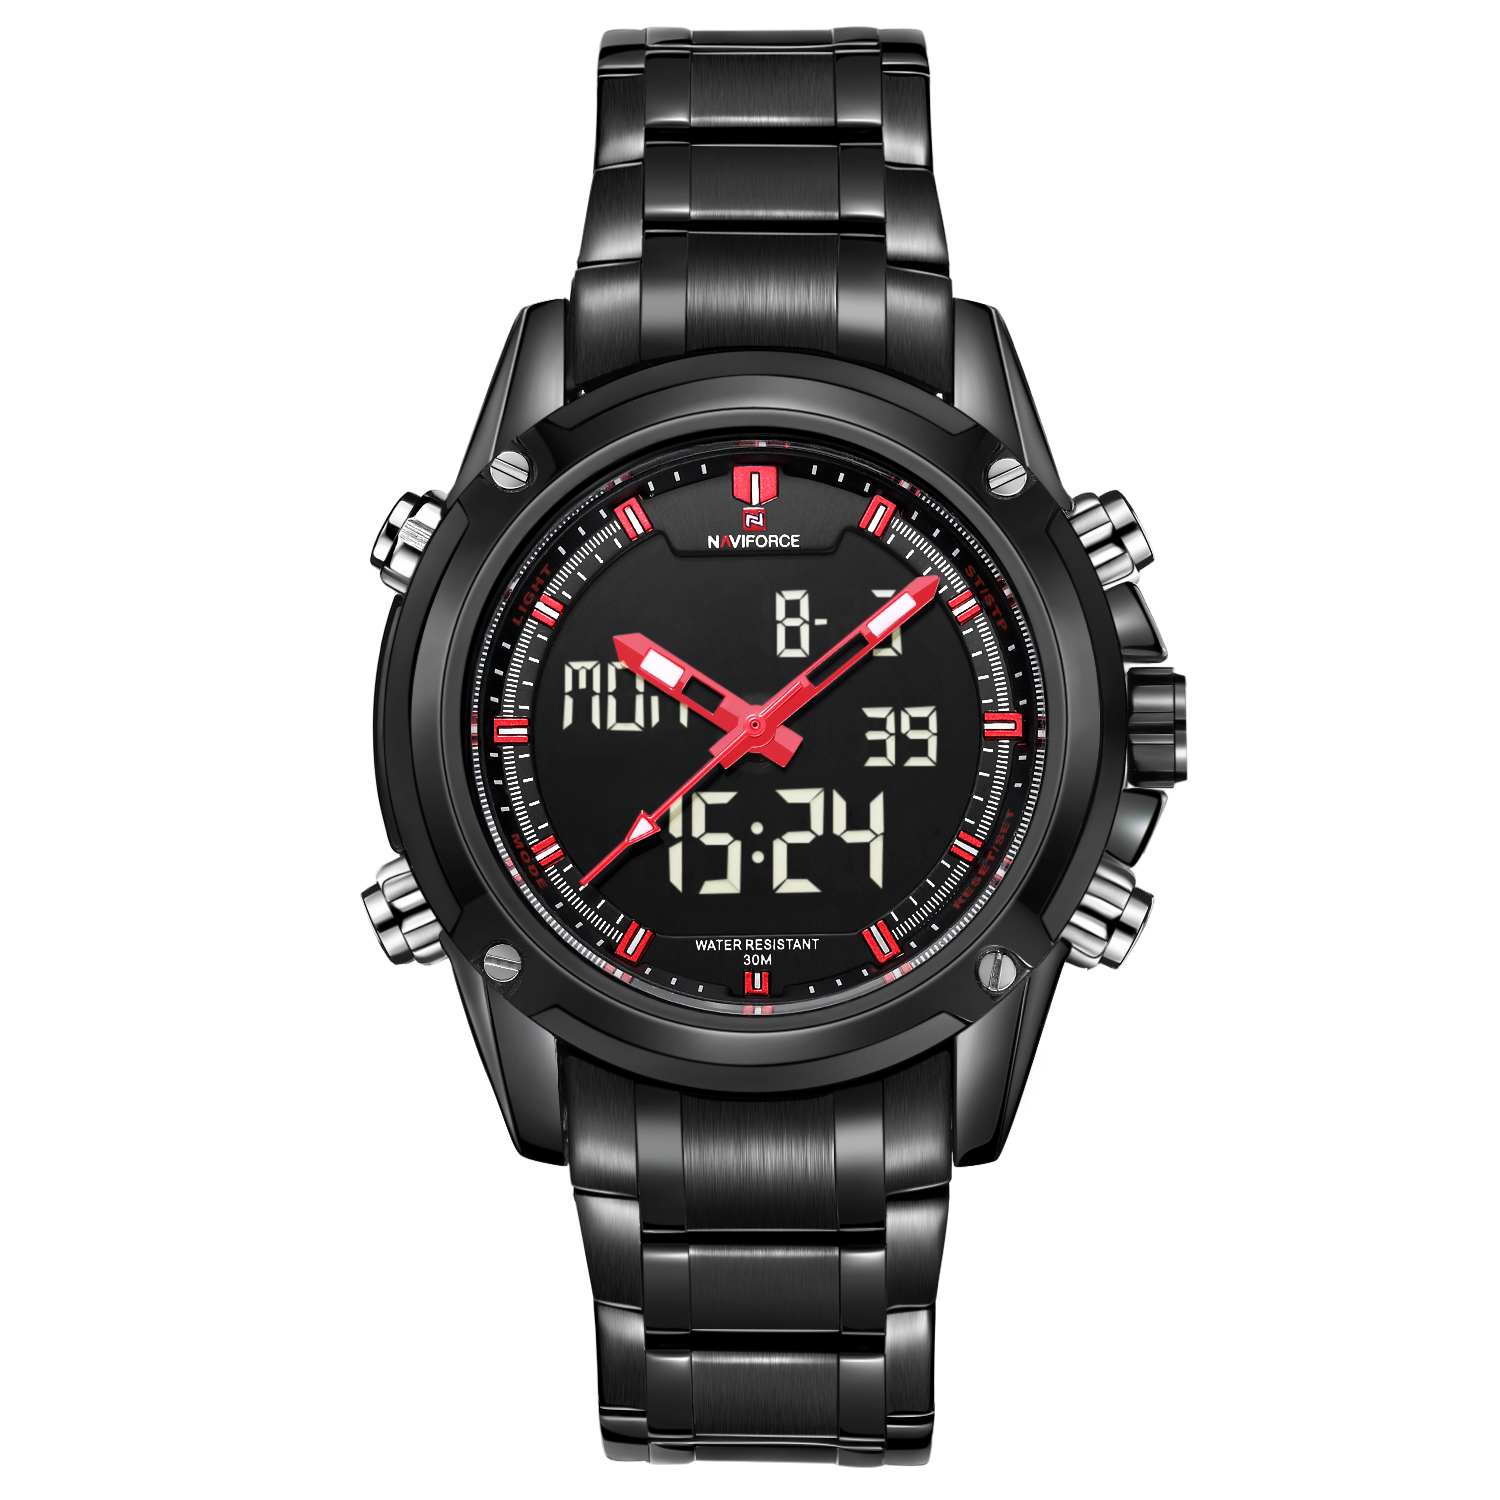 NAVIFORCE Watch Men Top Brand Luxury Digital Analog Sport Wristwatch Military Stainless Steel Male Clock Relogio Masculino 2019-in Quartz Watches from Watches on AliExpress - 11.11_Double 11_Singles' Day 1